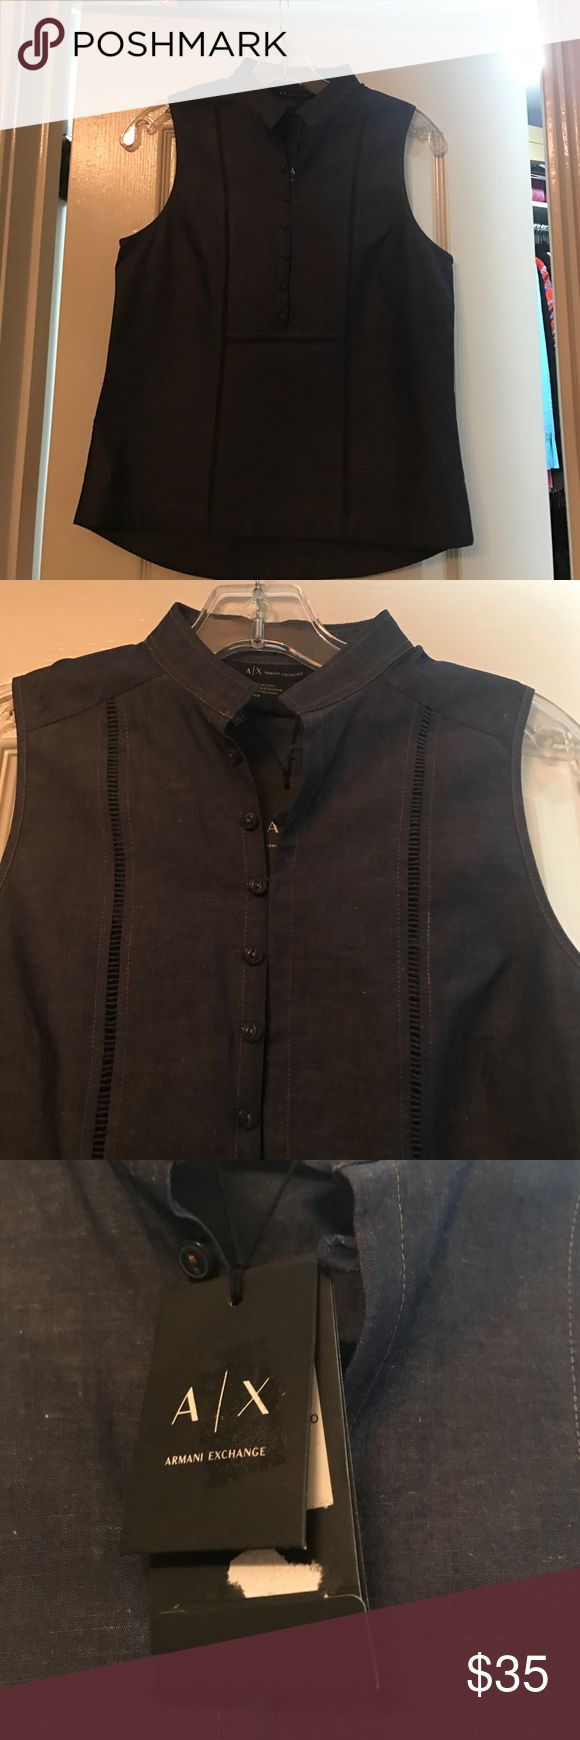 NWT ARMANI EXCHANGE DENIM TOP! NWT Armani Exchange denim sleeveless top!! Working buttons down the front! Beautiful detail on the front and back! A very beautiful piece to add to your spring/summer wardrobe!! A/X Armani Exchange Tops